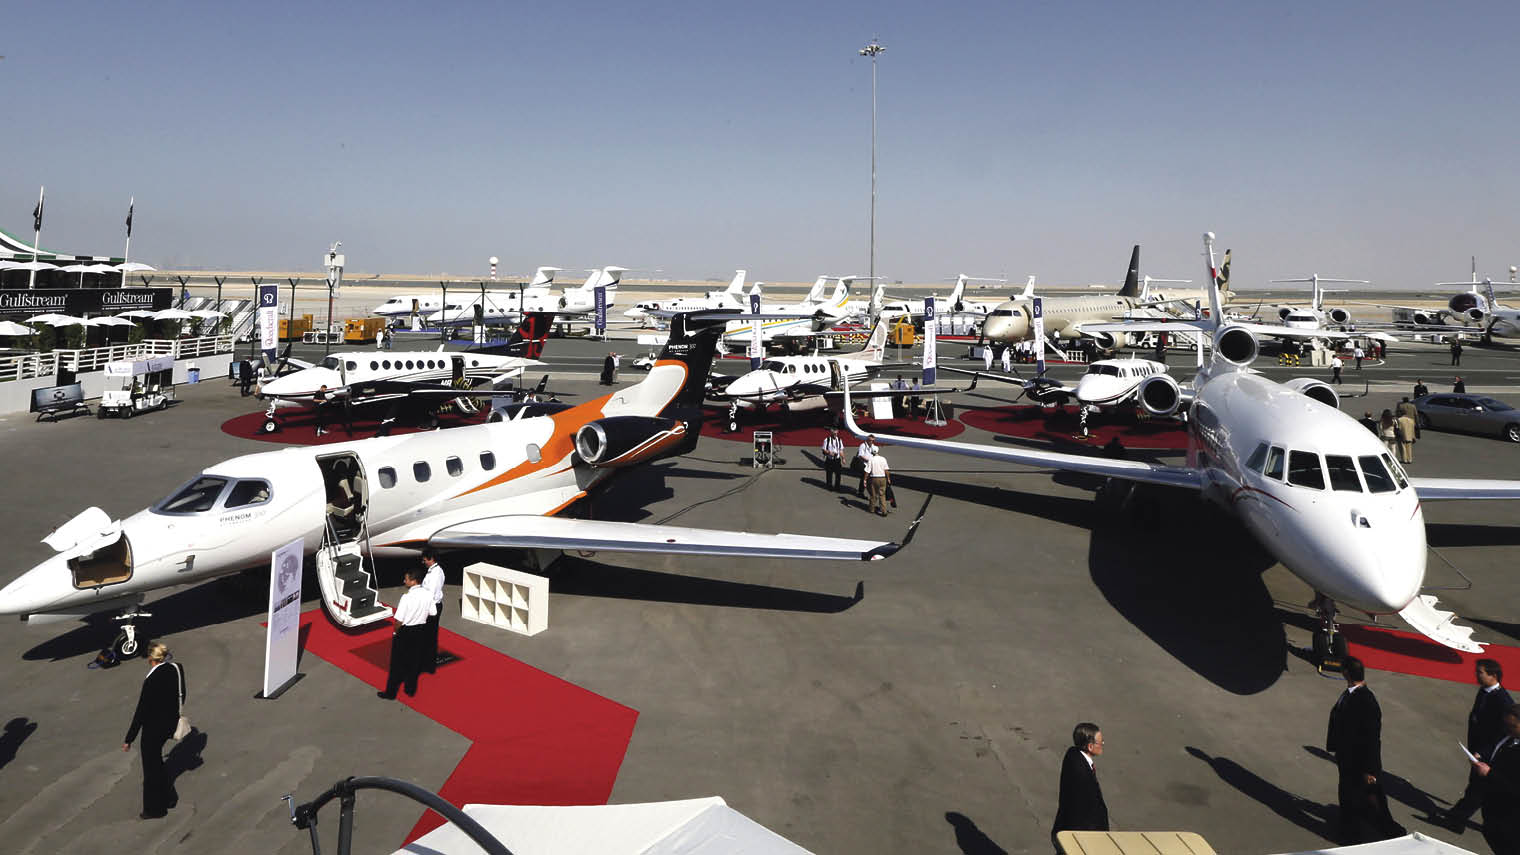 Visitors at the Middle East Business Aviation event at Dubai's Al Maktoum Airport